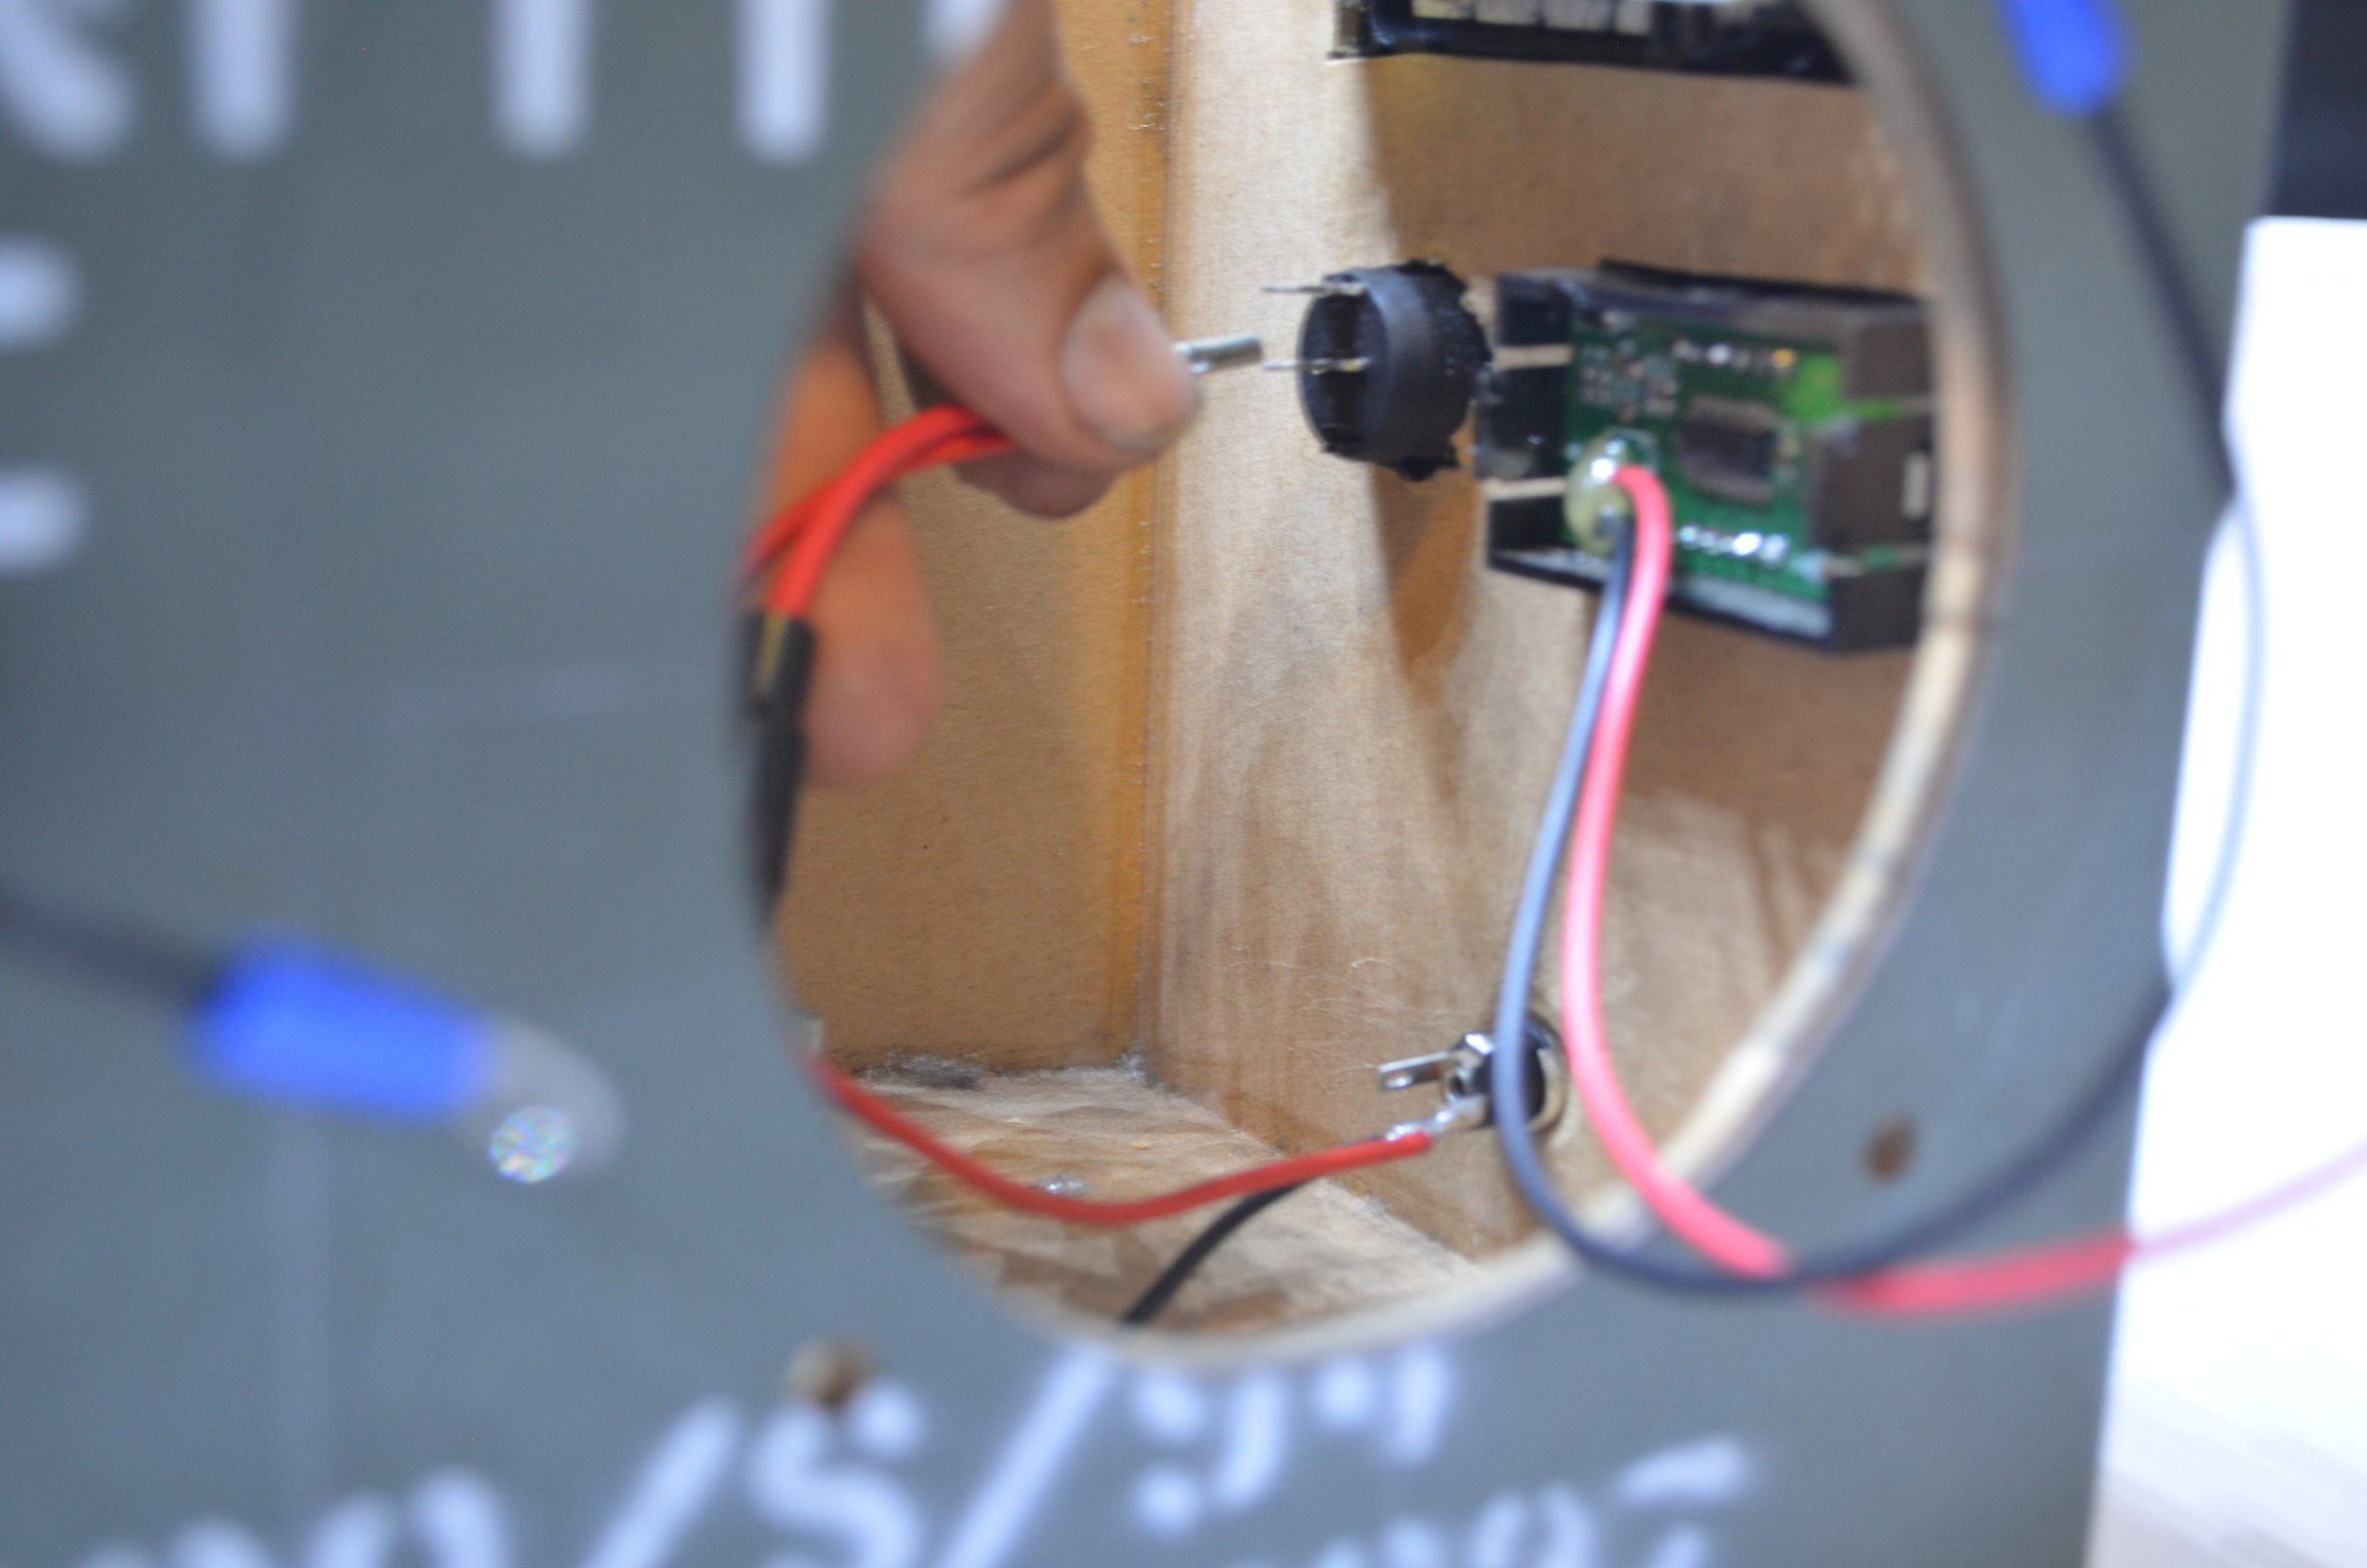 Wiring the Positive DC Socket to either pole of the Switch.